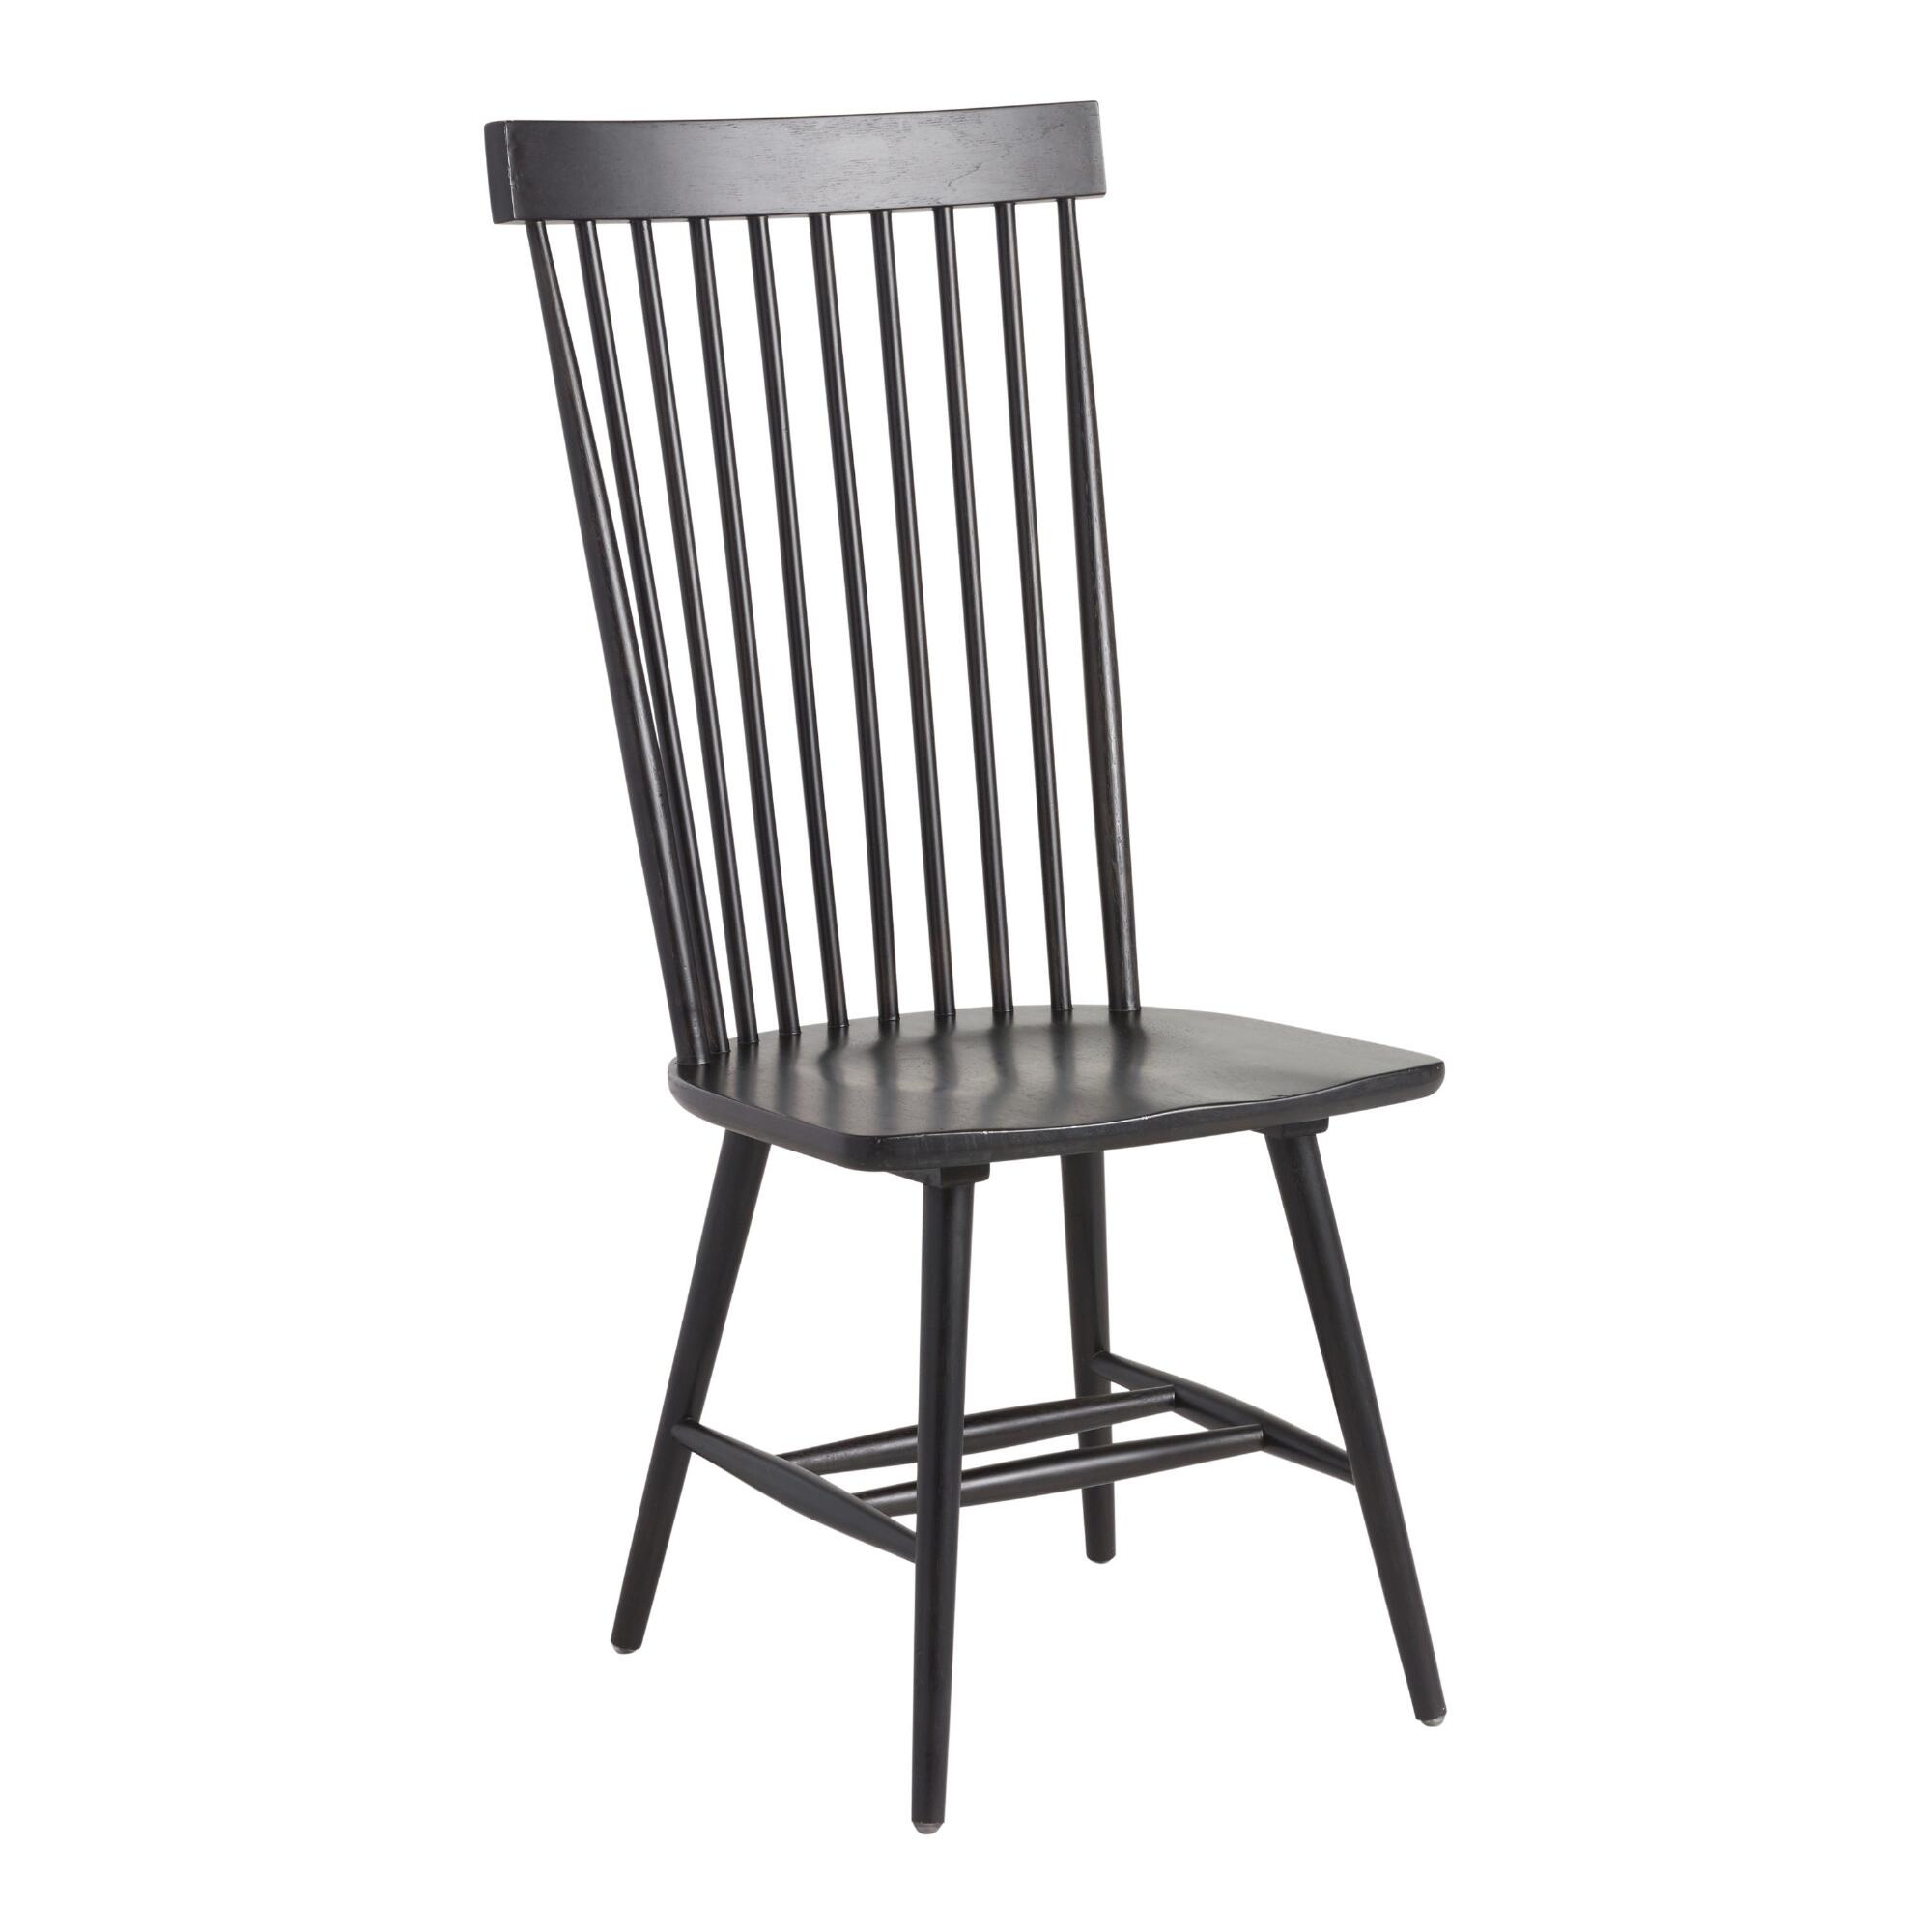 Black Wood Kamron High Back Windsor Chairs Set of 2. Dining Room Chairs   Upholstered Sets   World Market